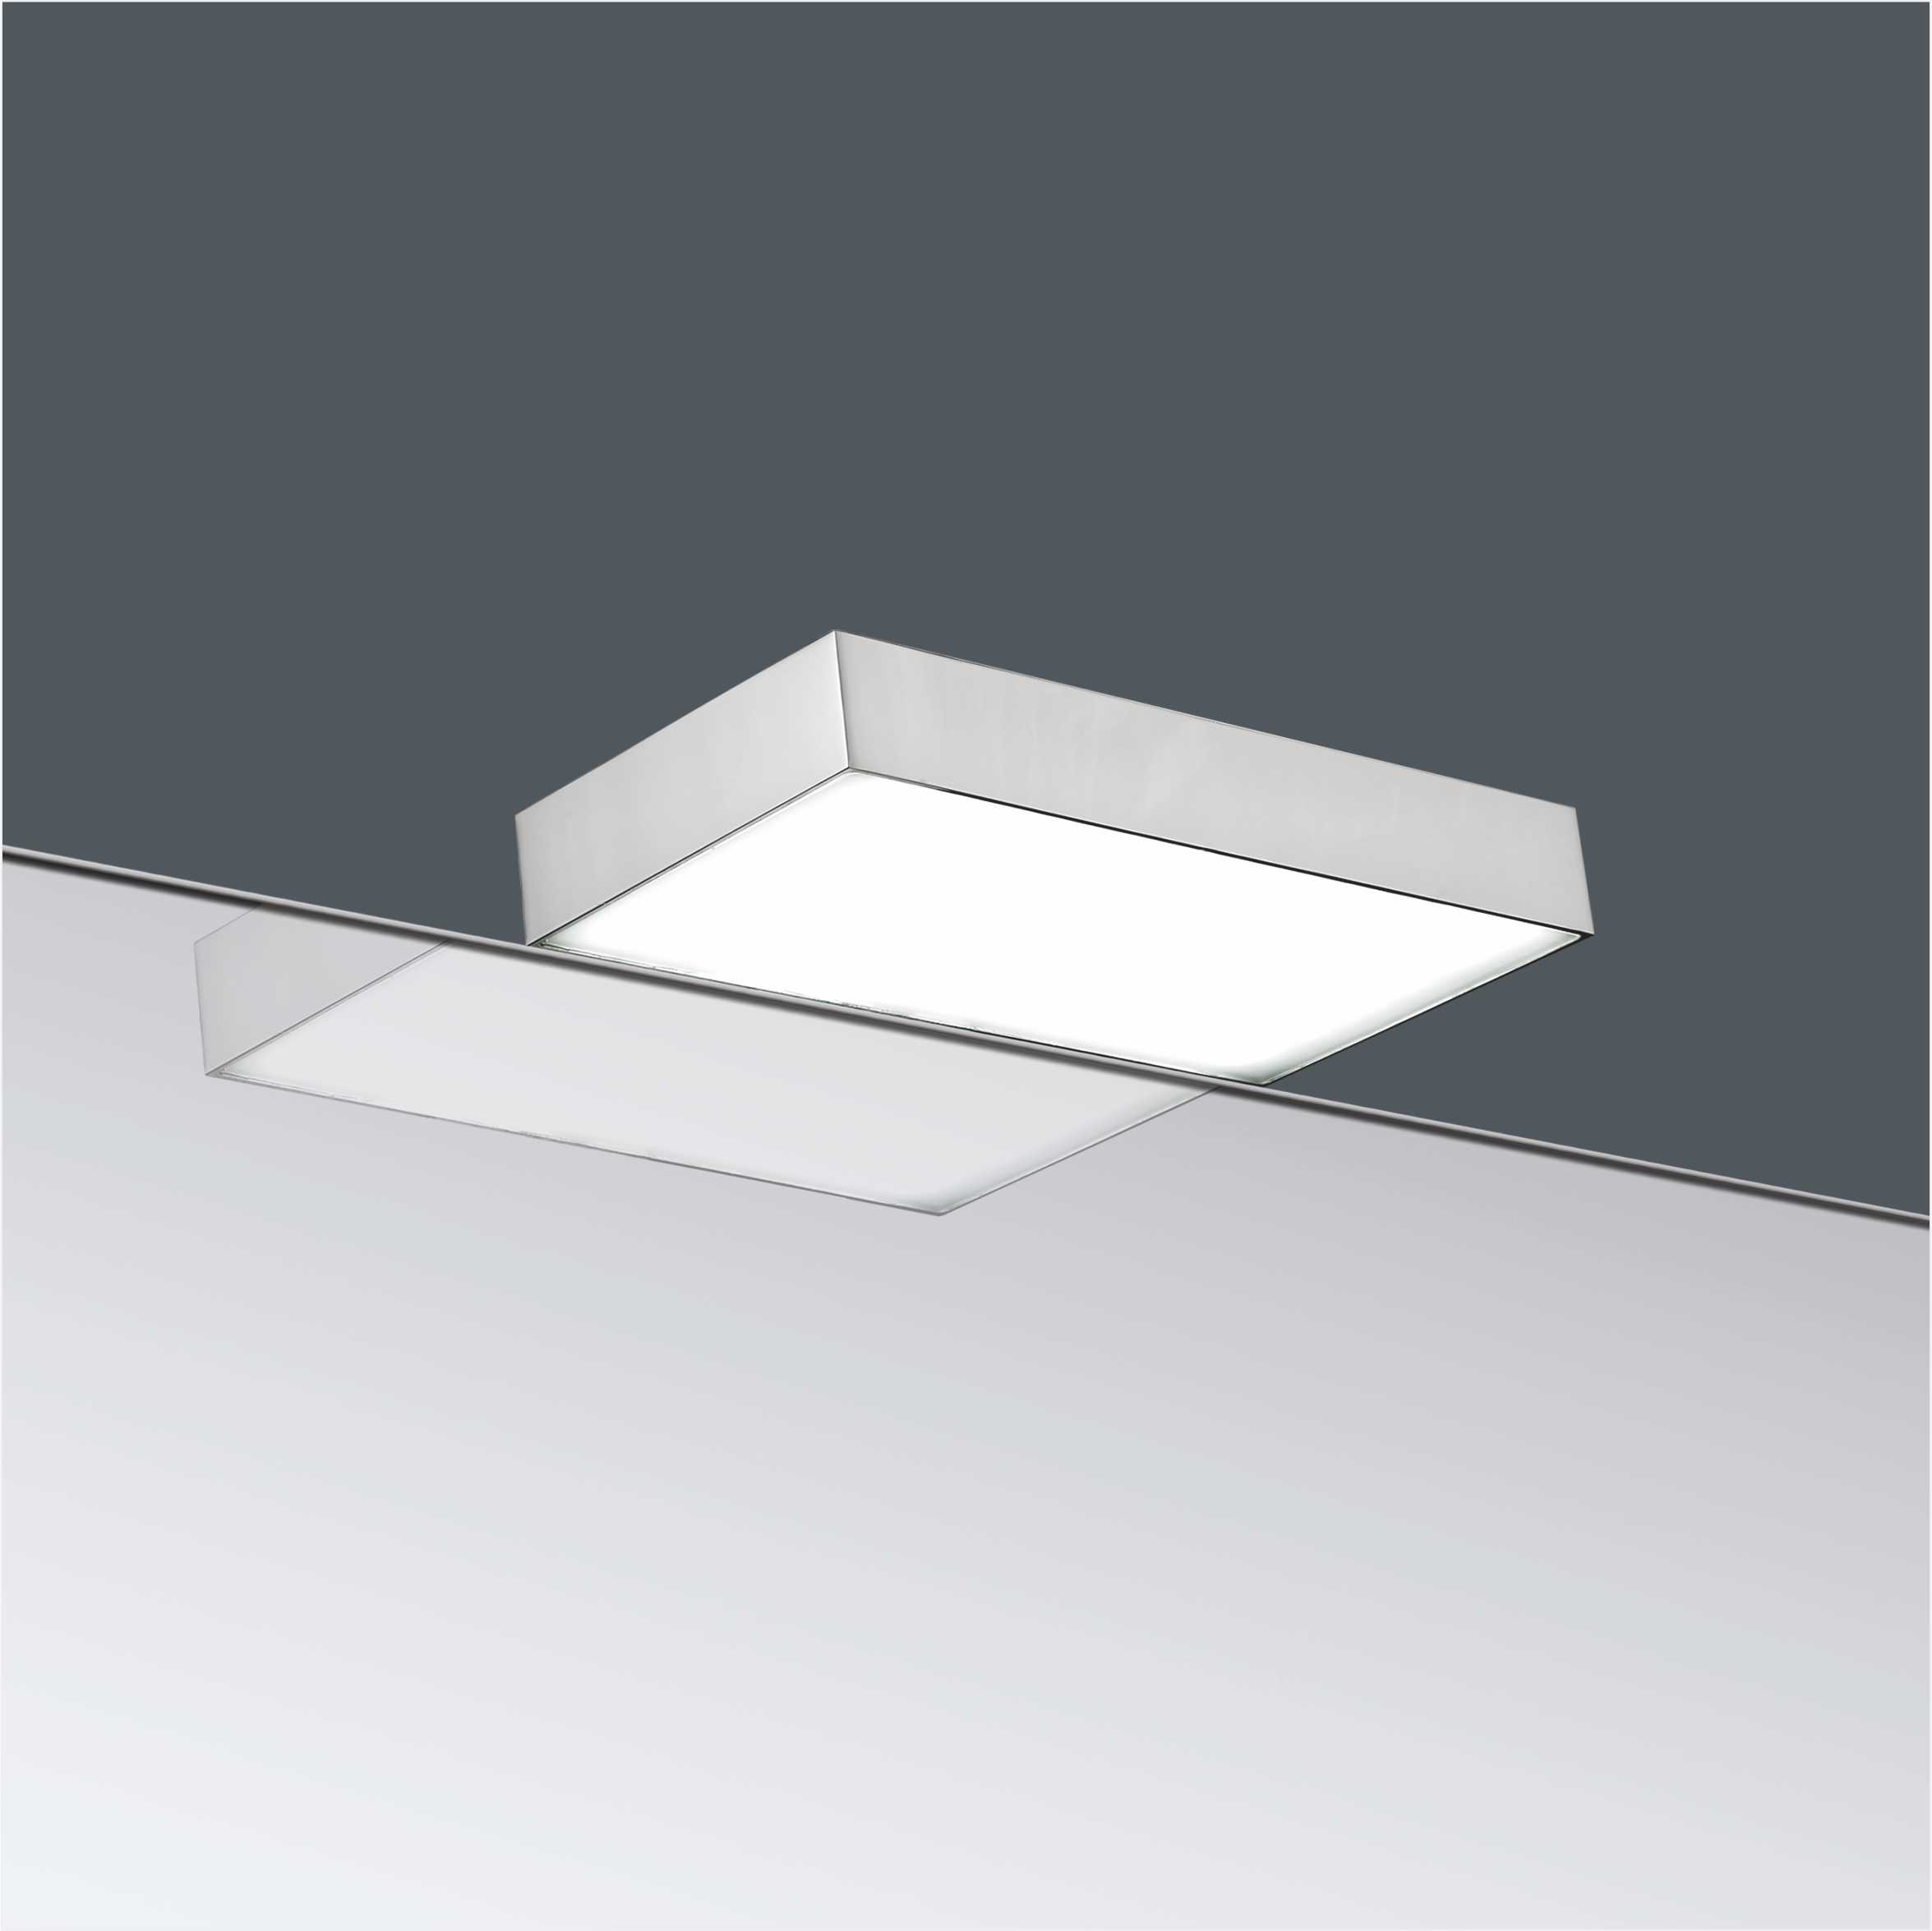 IP44 Rectangular Aluminum 230V LED Bathroom Mirror Light 2976